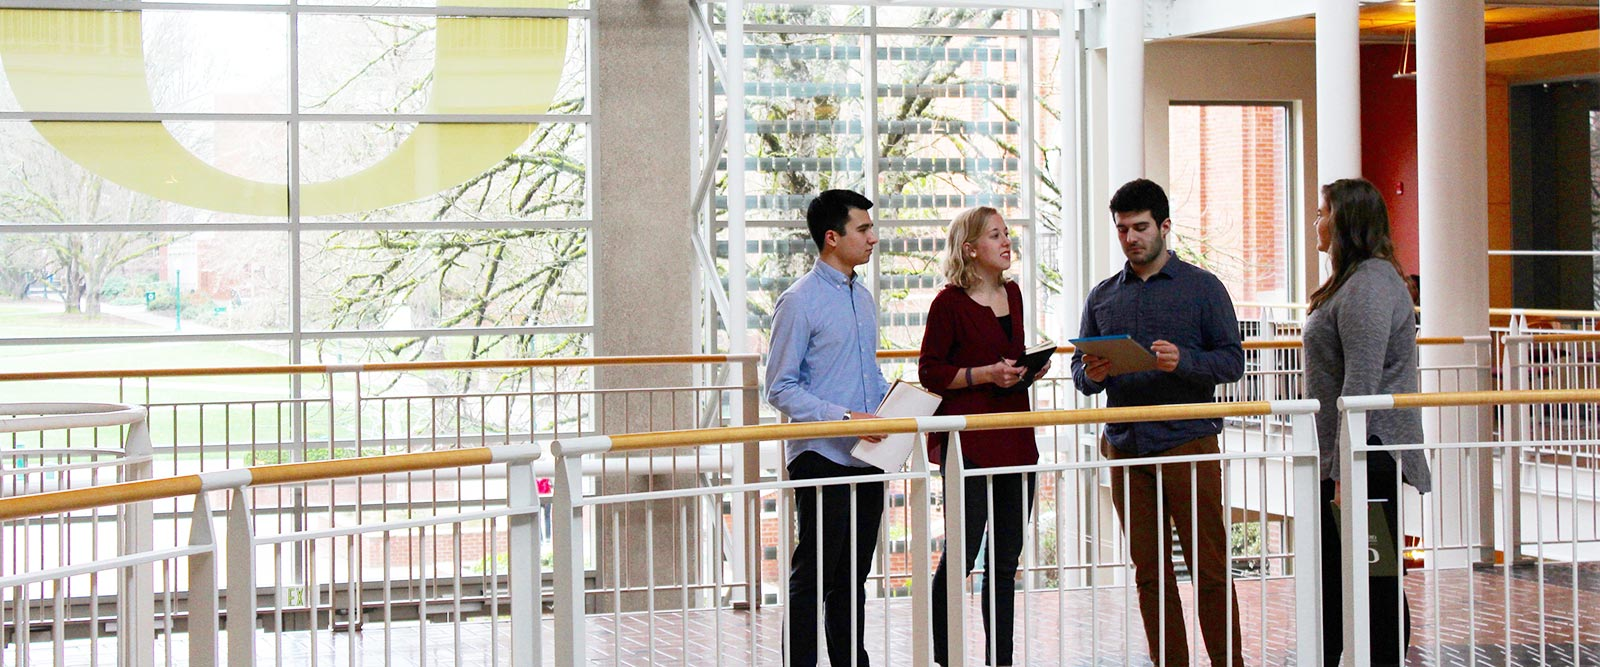 OBCG students talk in the Lillis atrium